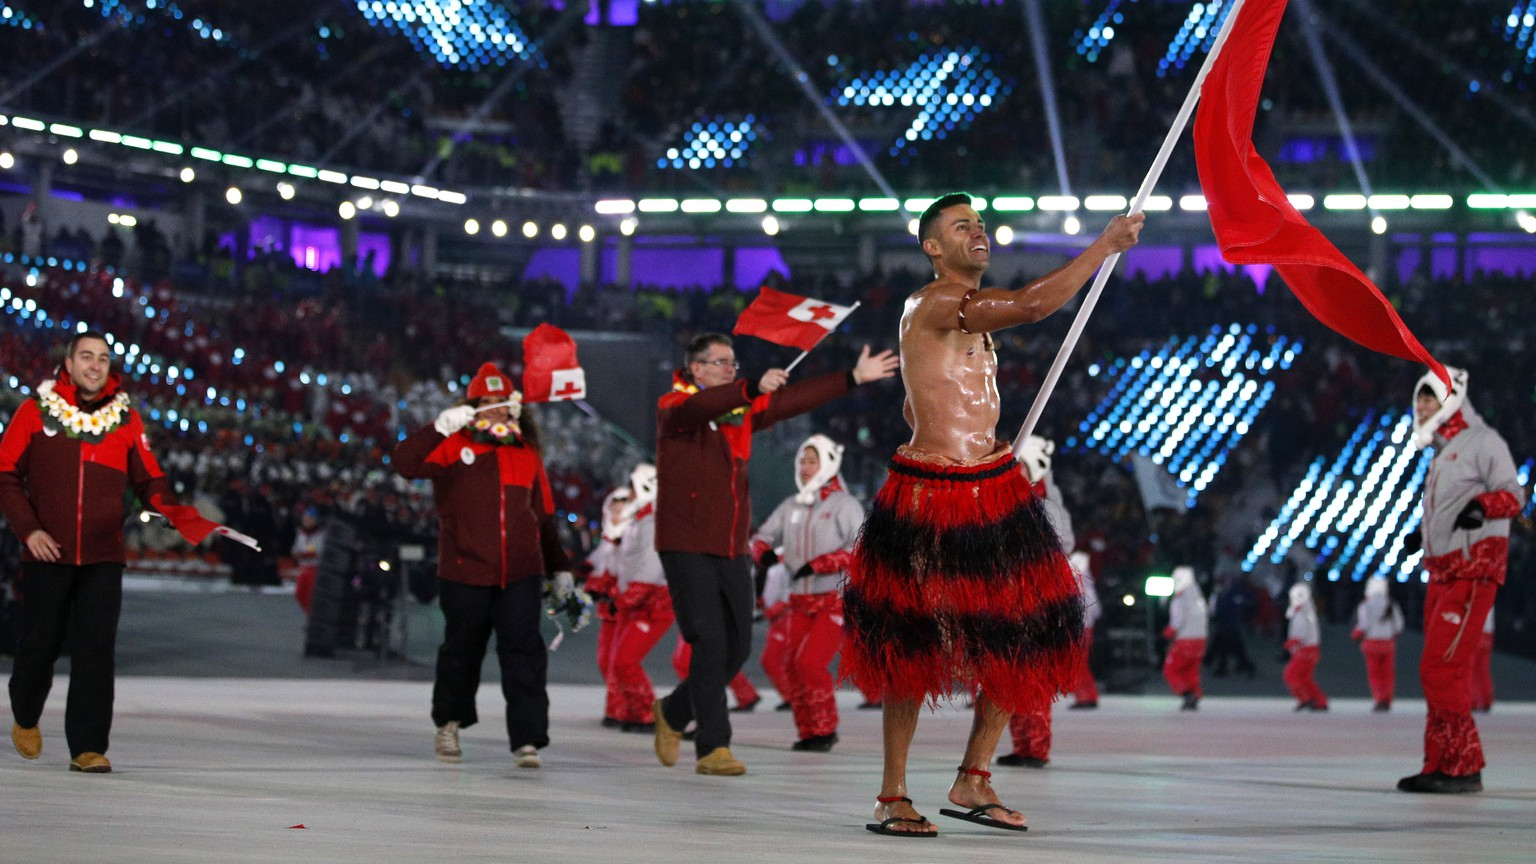 Pita Taufatofua carries the flag of Tonga during the opening ceremony of the 2018 Winter Olympics in Pyeongchang, South Korea, Friday, Feb. 9, 2018. (AP Photo/Jae C. Hong)